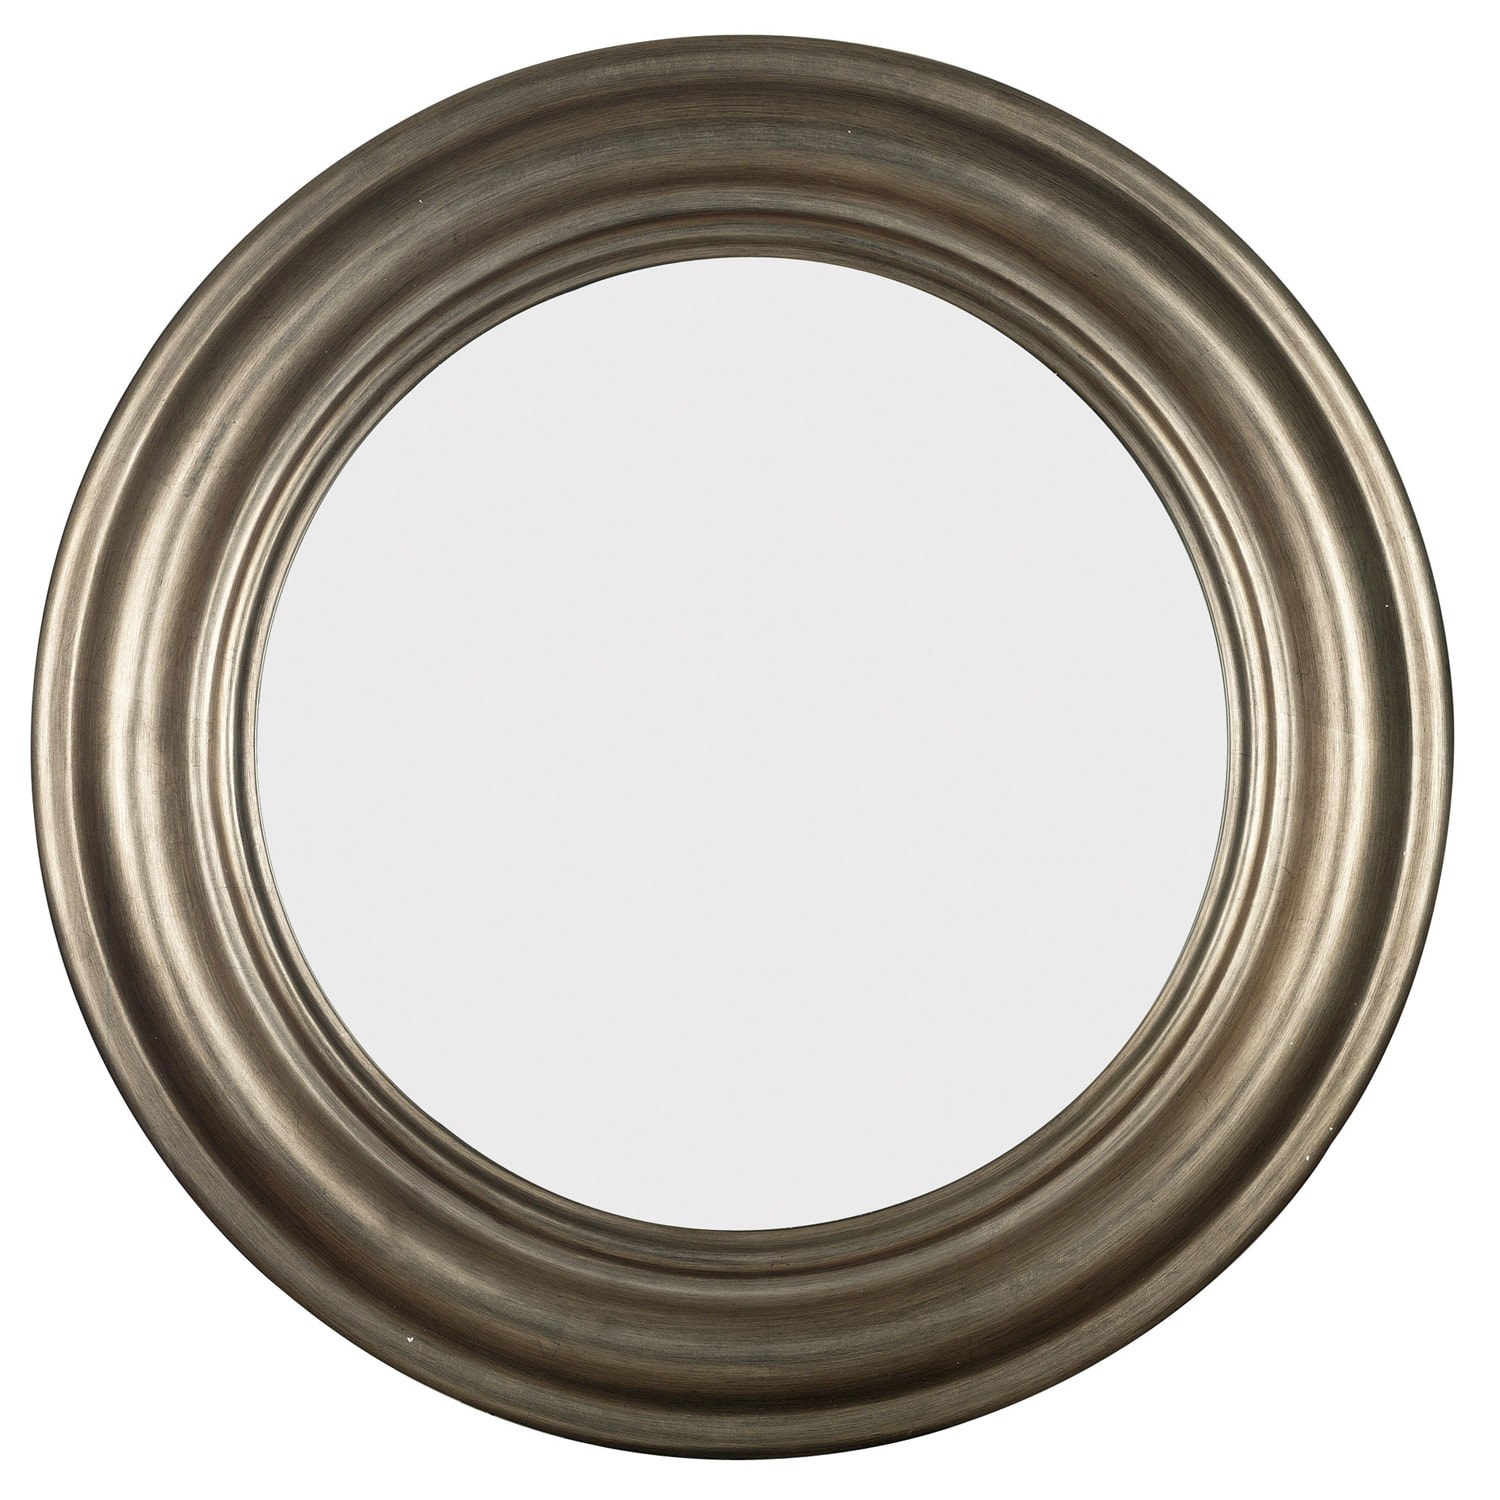 Featured Image of Round Antique Mirror